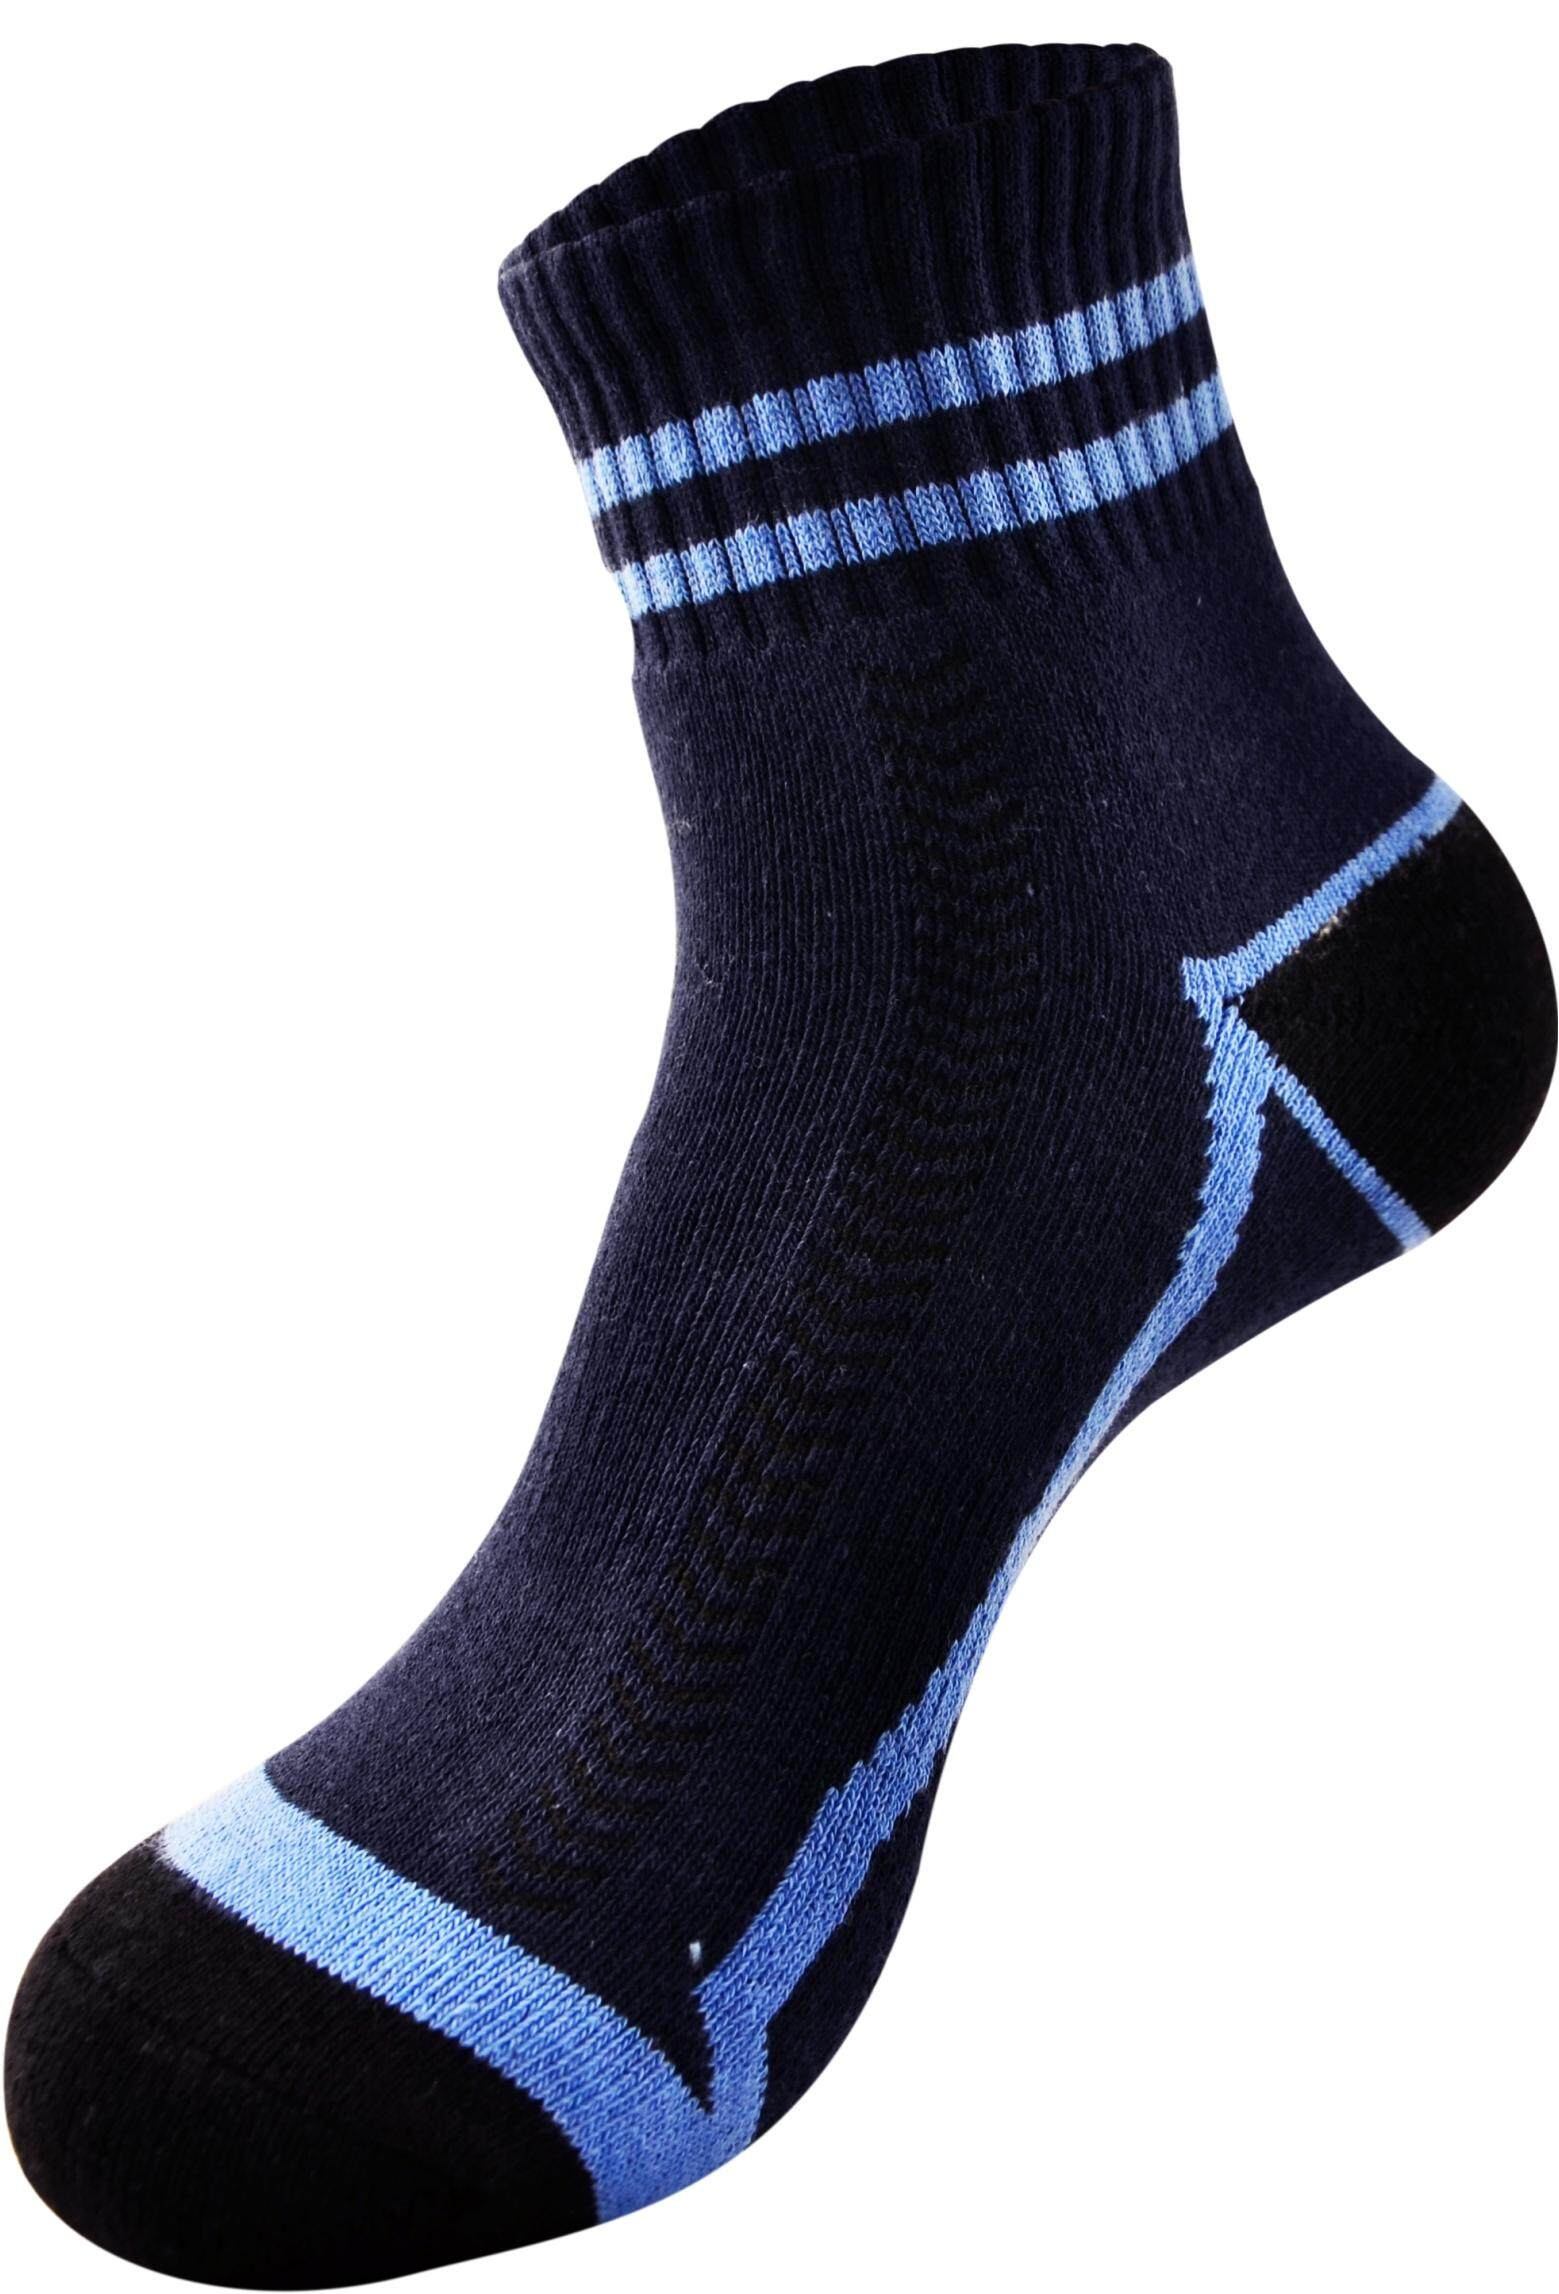 Sawks Sport Bamboo Charcoal Ankle Socks with Cushion Base - Active Design